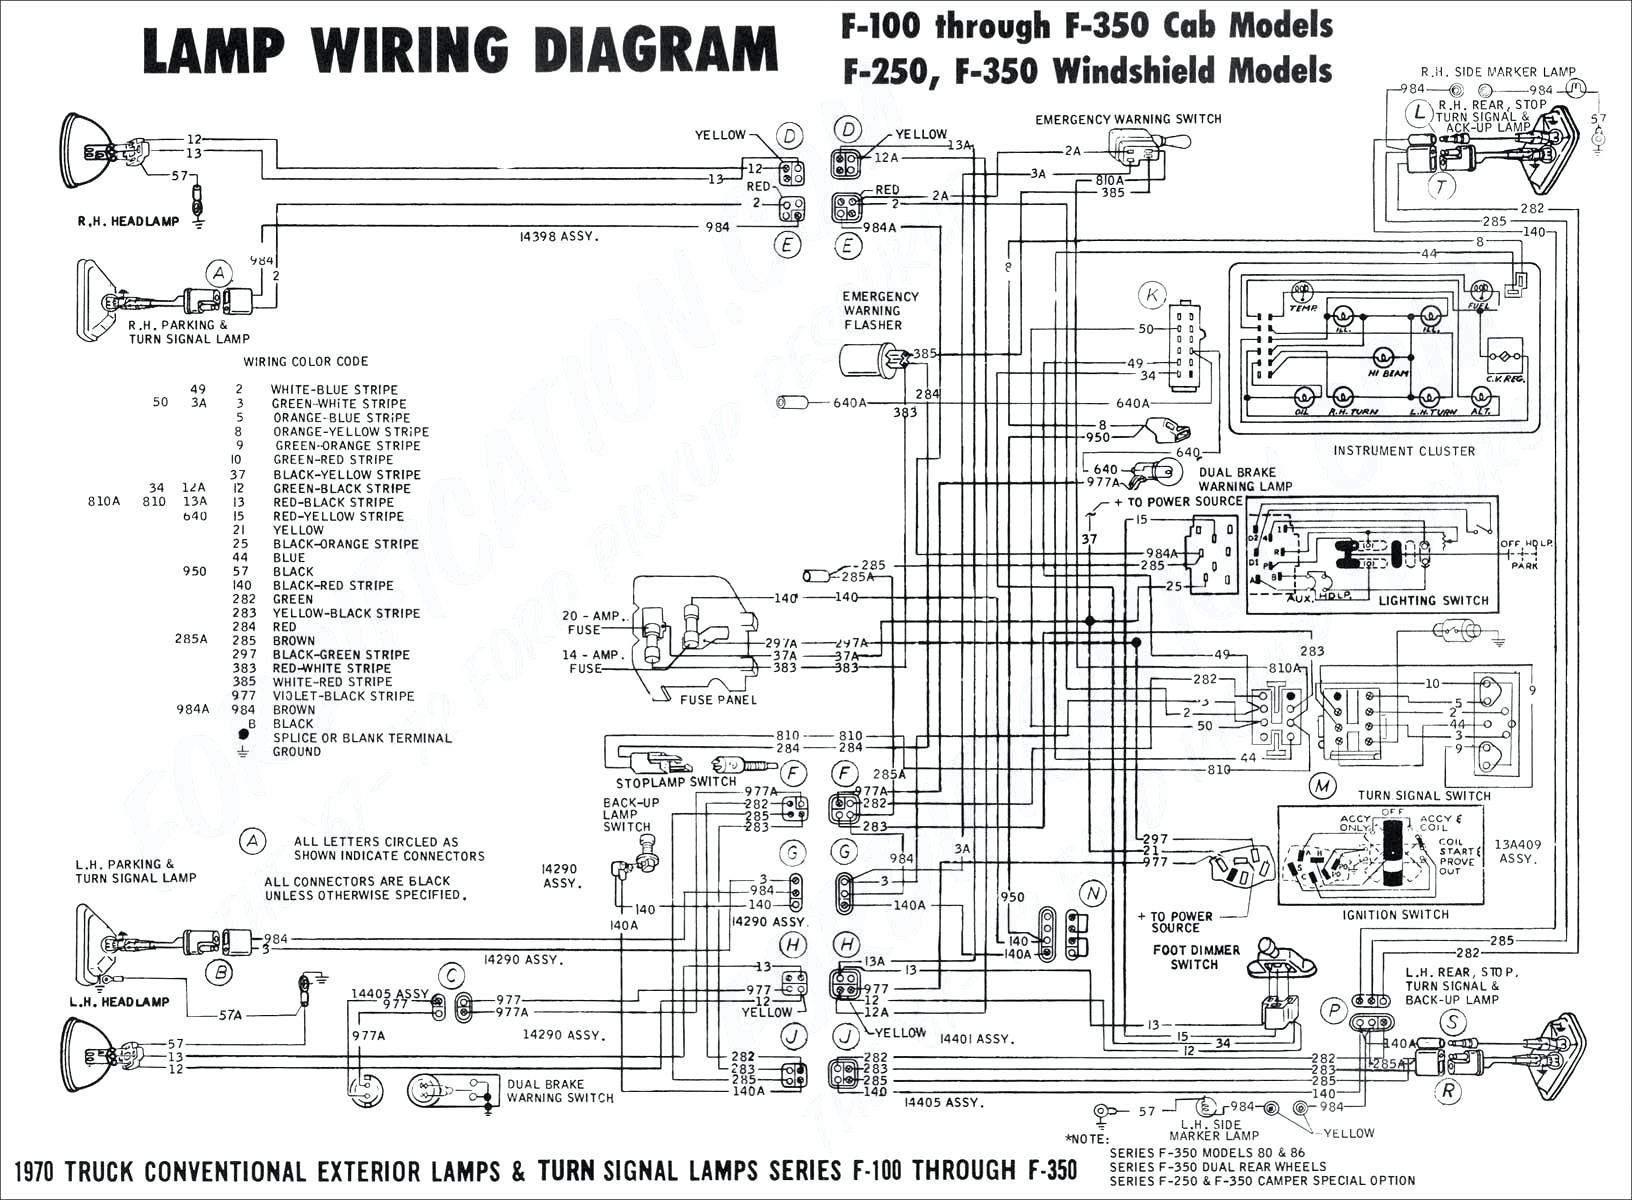 E Trailer Wiring Diagram 94 F350 Wiring Diagrams Layout Wiring Diagrams • Of E Trailer Wiring Diagram Best Relay Wire Diagram • Electrical Outlet Symbol 2018